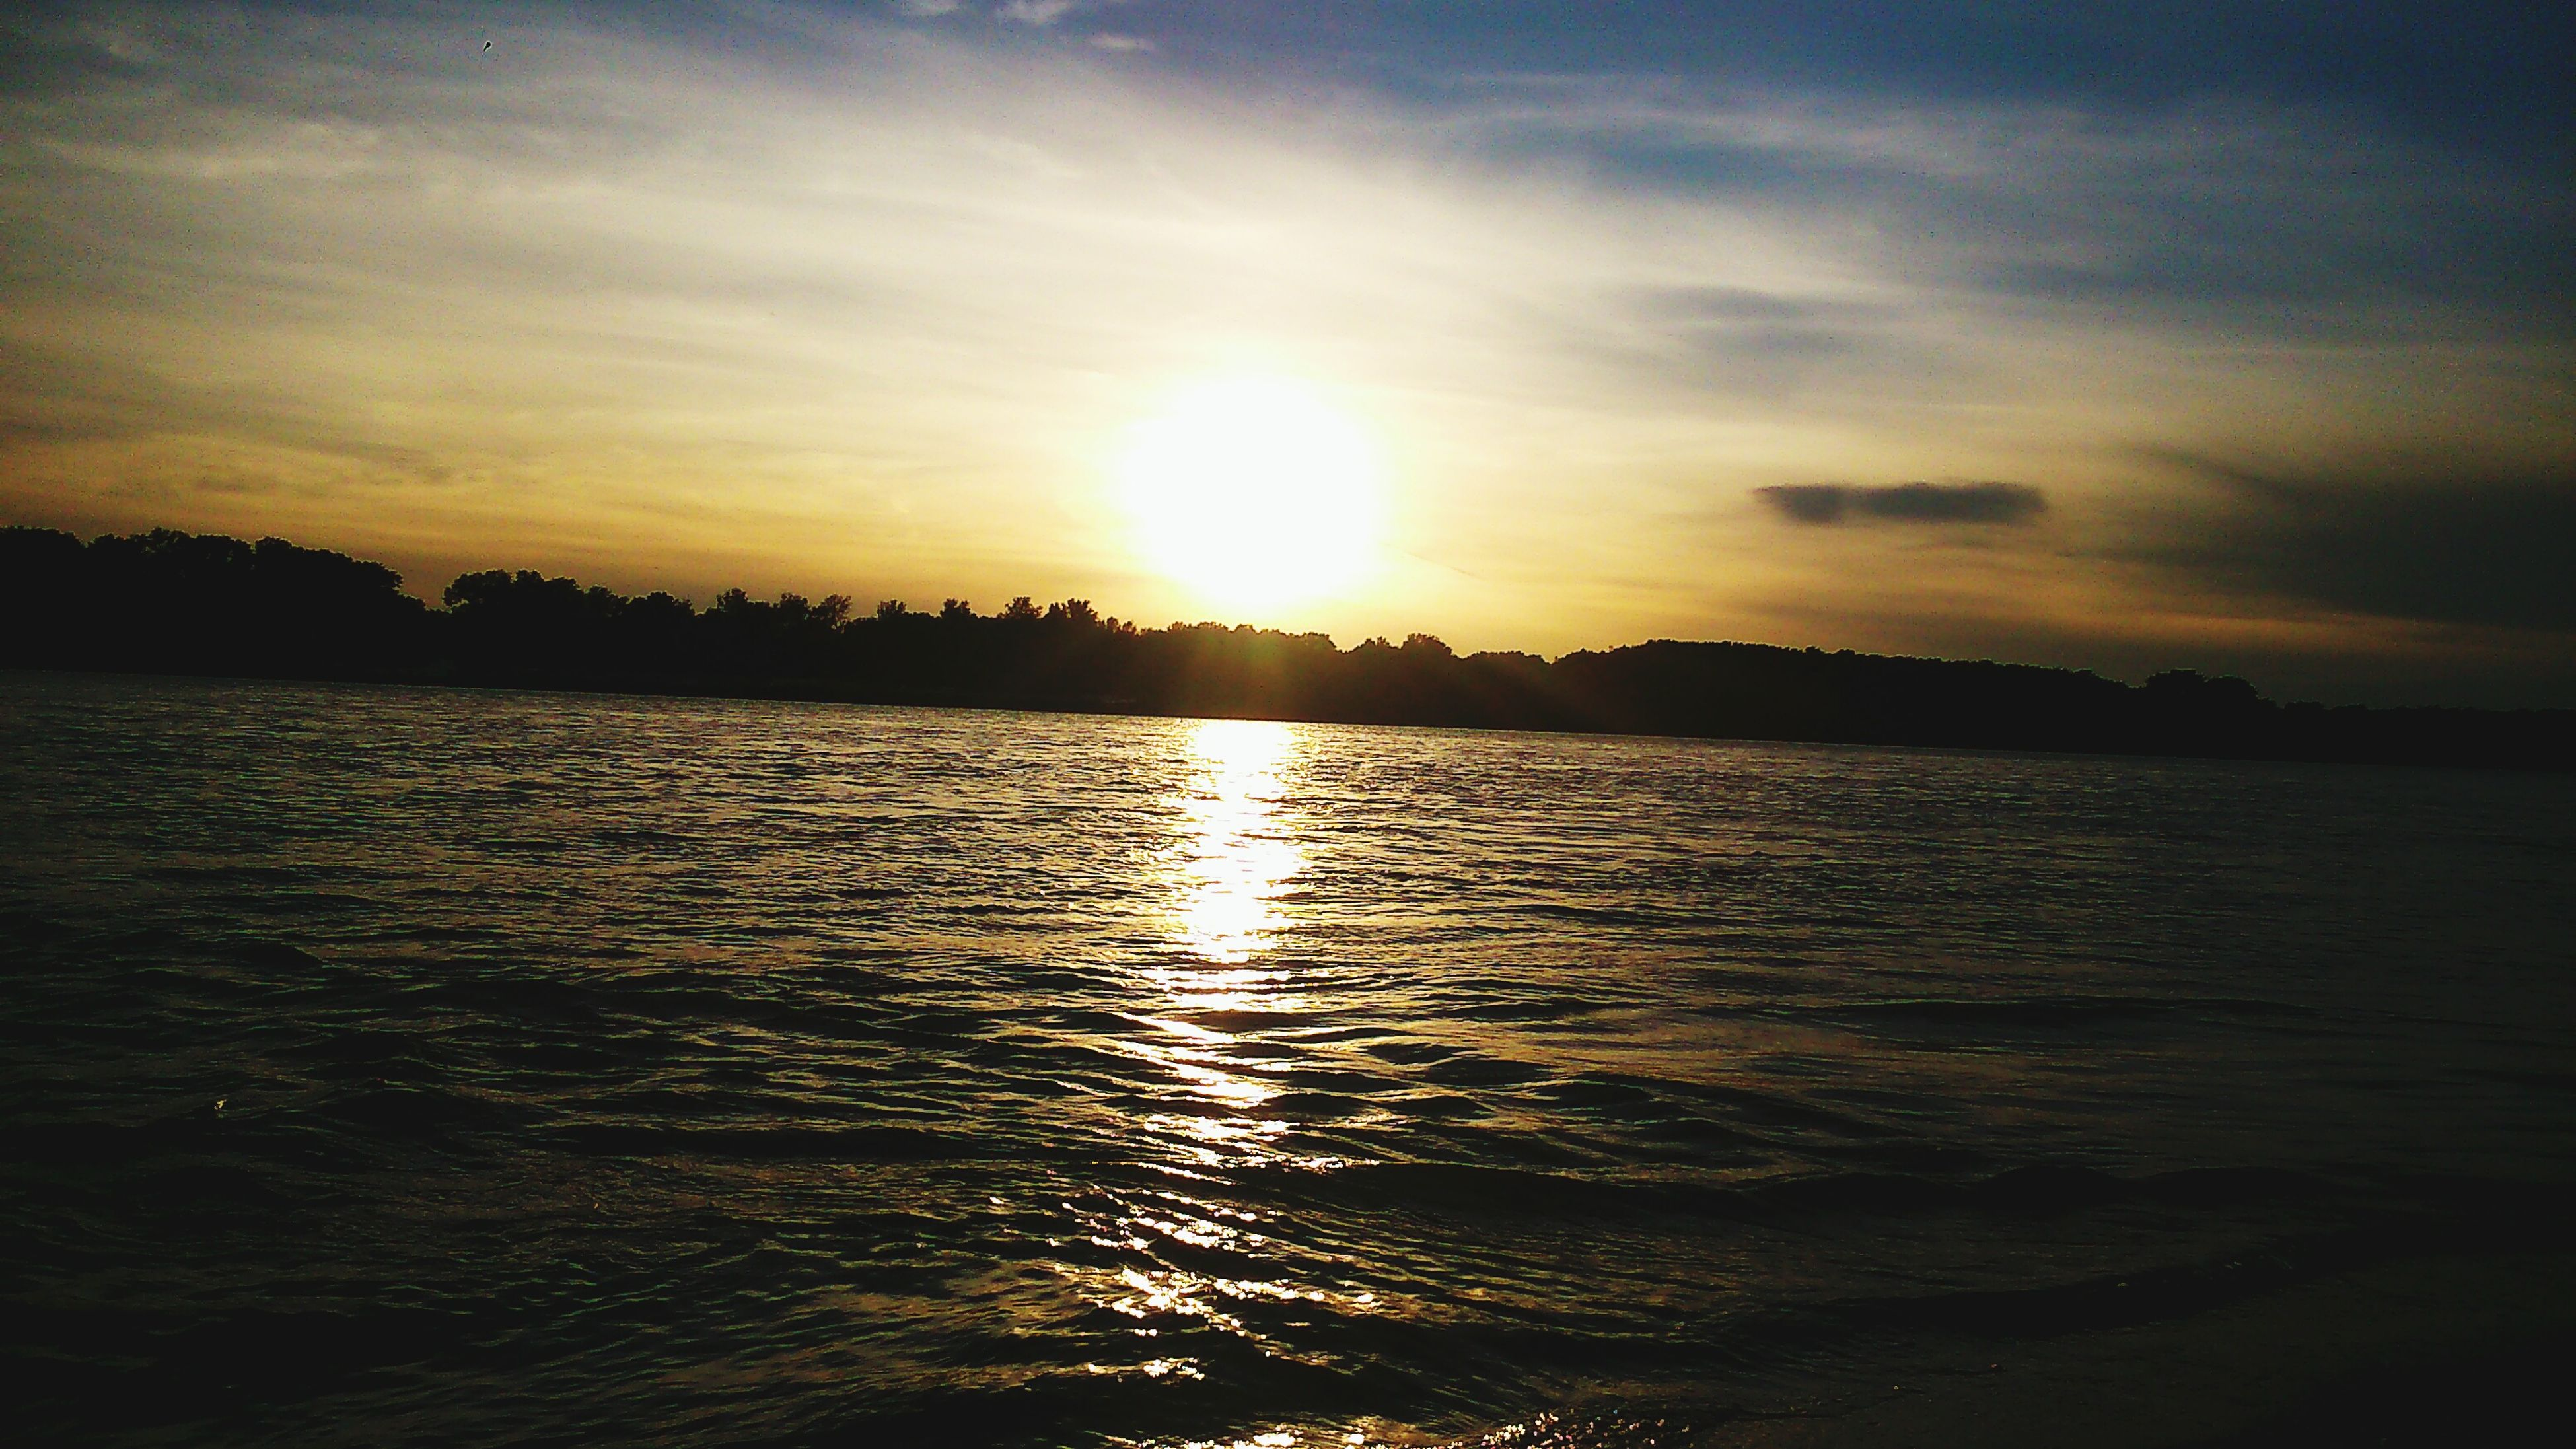 water, sunset, sun, reflection, tranquil scene, waterfront, scenics, tranquility, beauty in nature, sky, rippled, silhouette, sunlight, nature, idyllic, sea, cloud - sky, lake, sunbeam, outdoors